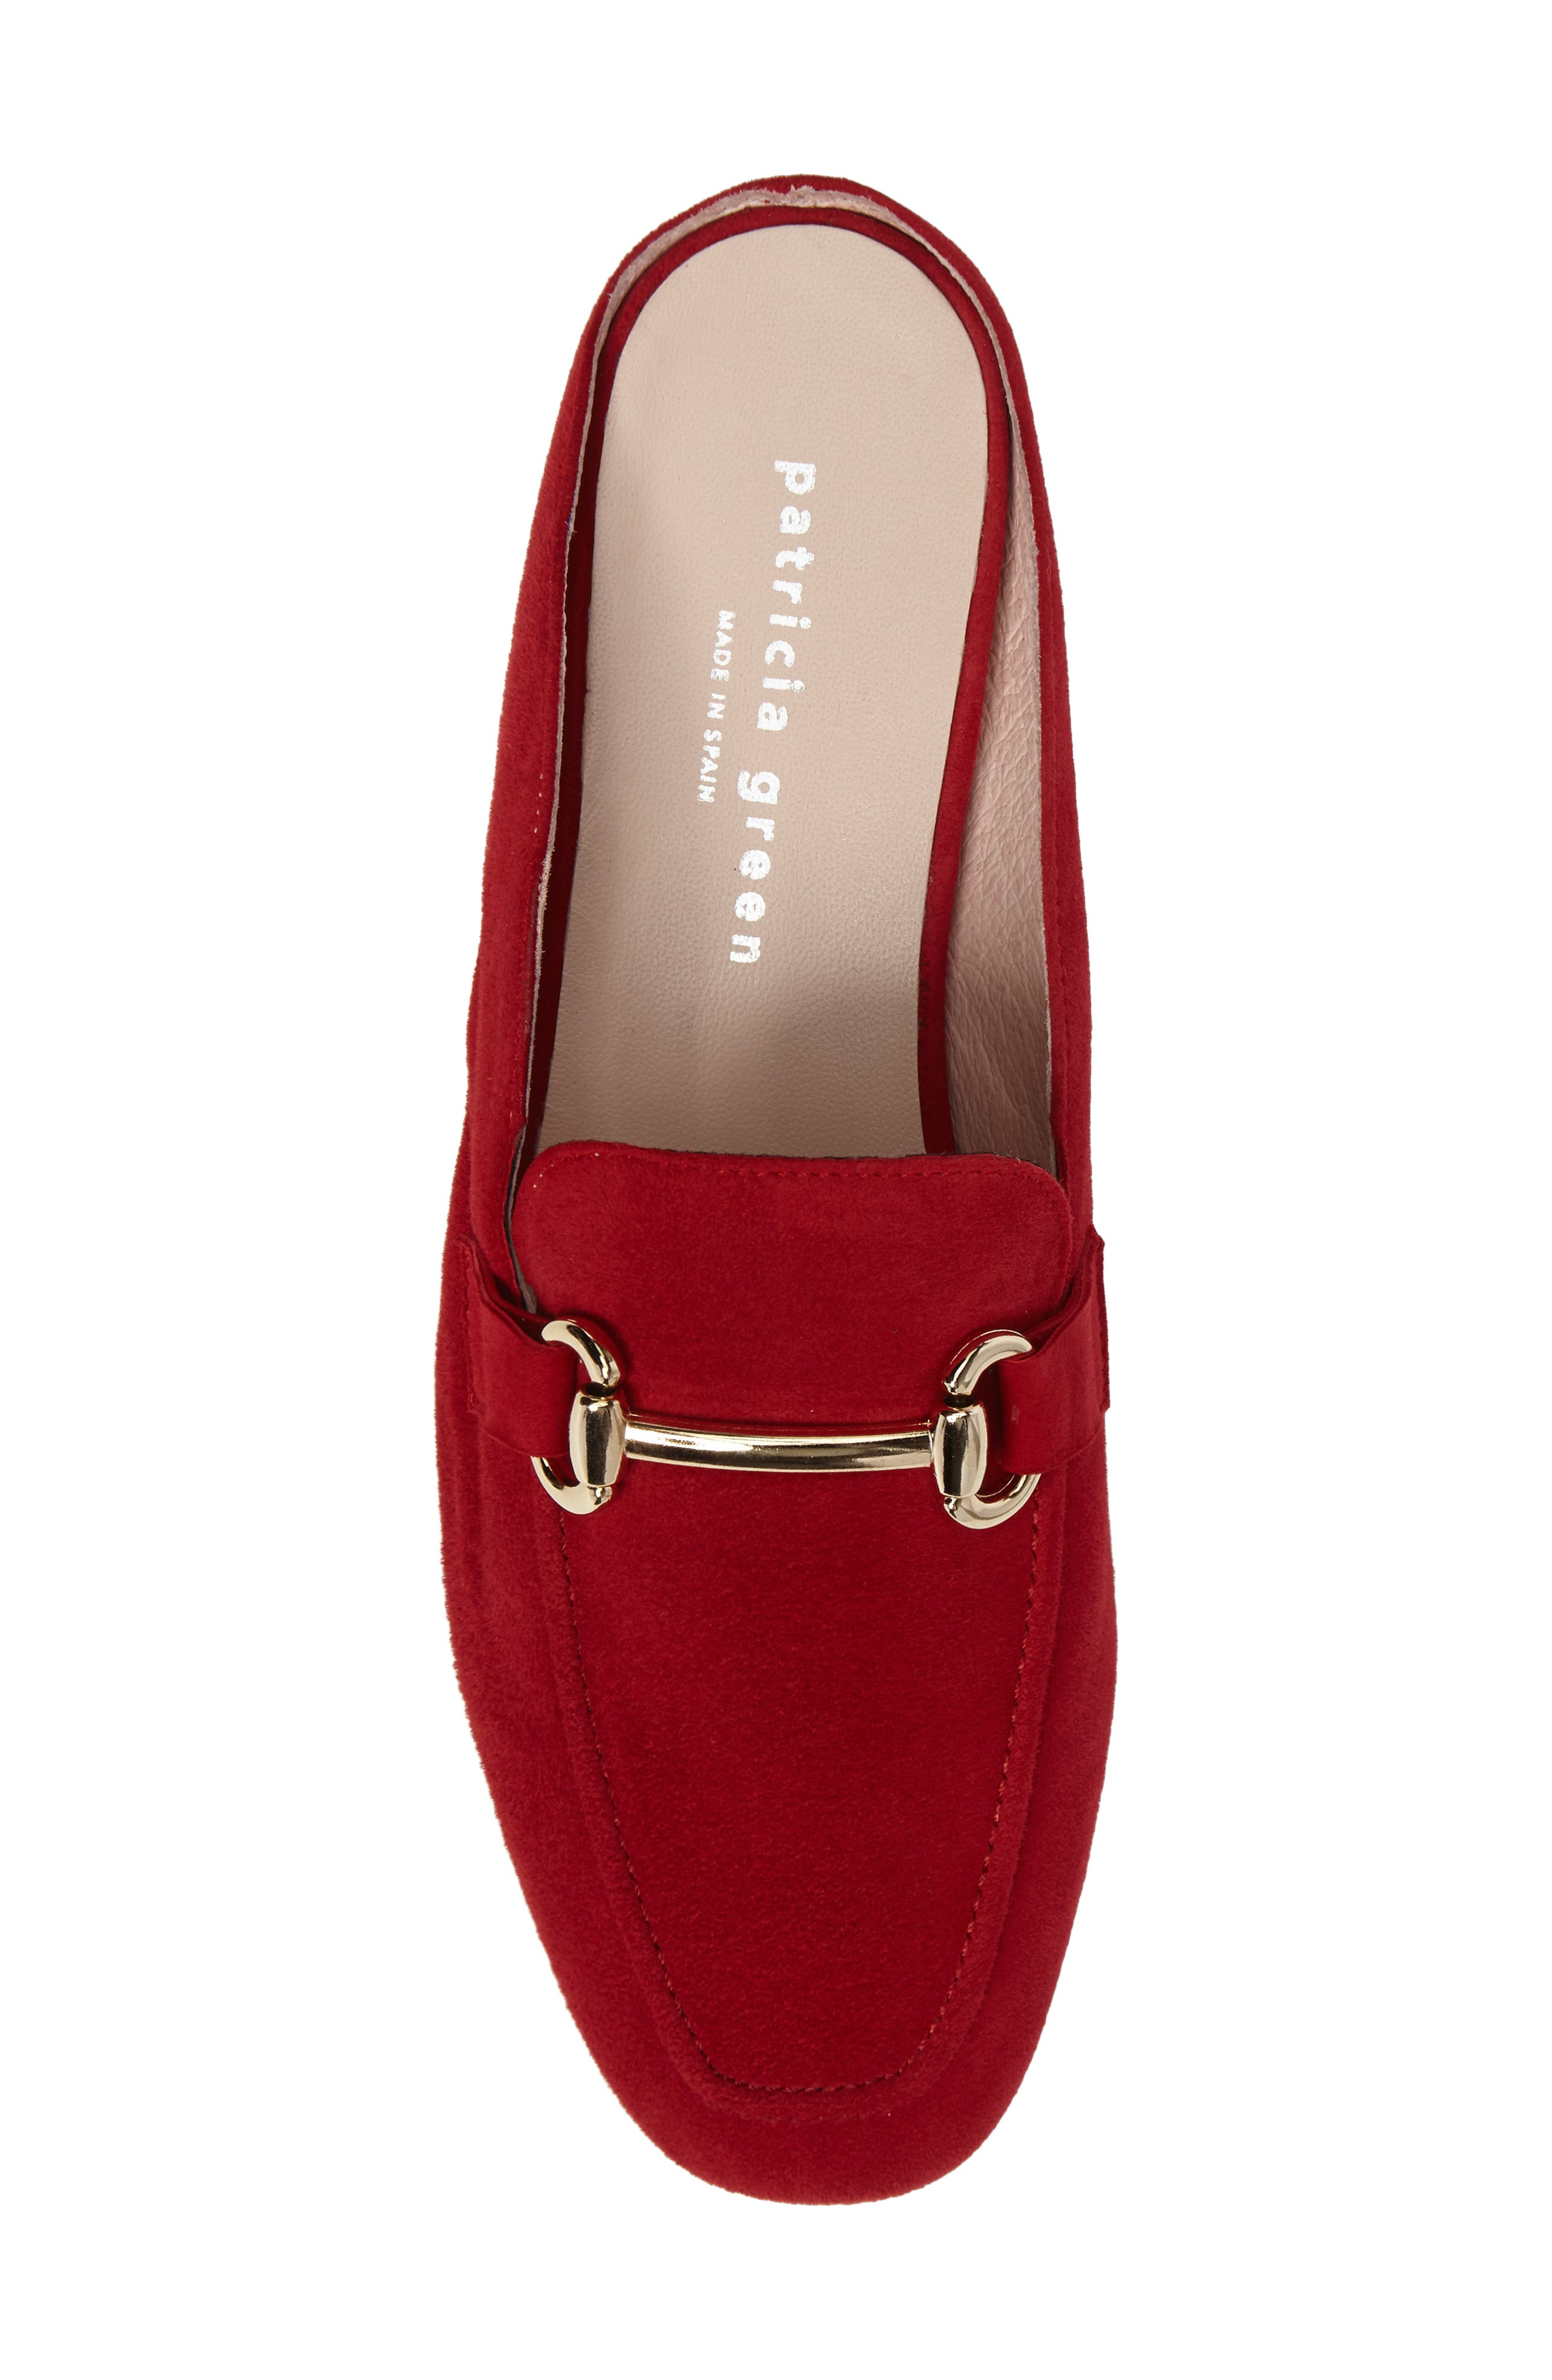 Sorrento Loafer Mule,                             Alternate thumbnail 5, color,                             RED SUEDE